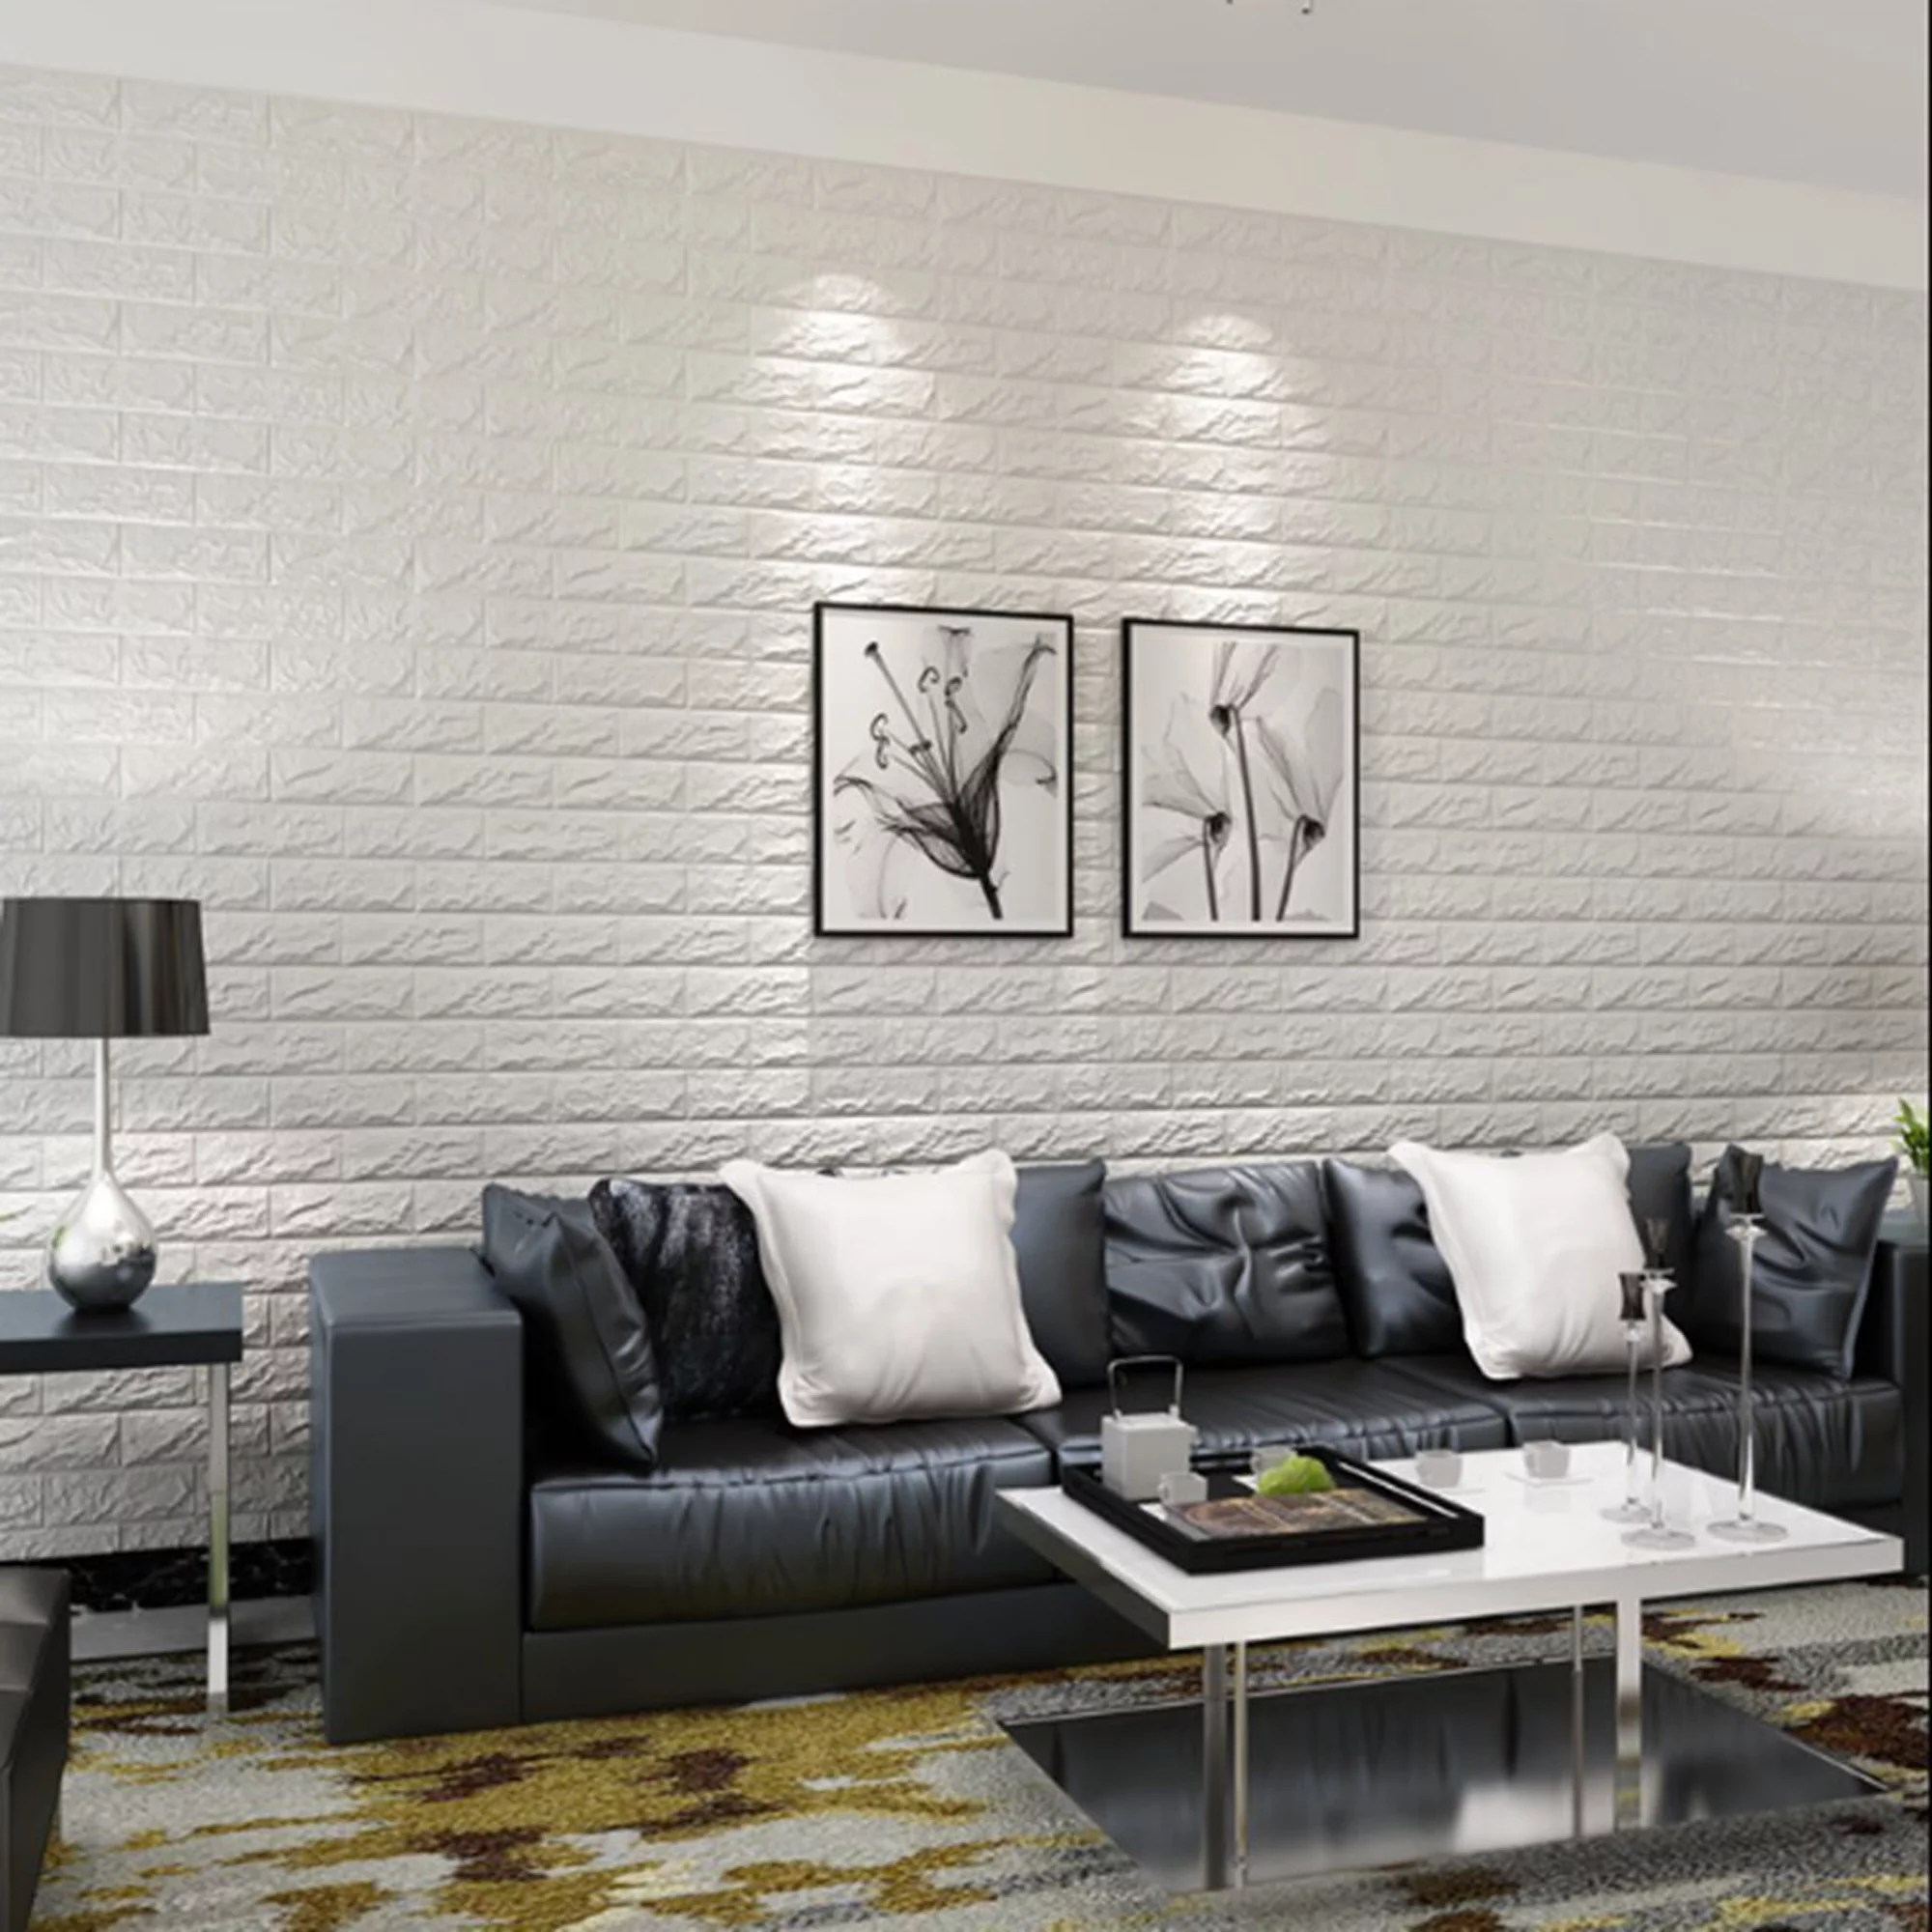 Nk Home 23 5x11 5inch 3d Pell And Stick Brick Wallpaper Wall Sticker White Modern Concise Style Home Bedroom Living Room Restaurants Sofa Tv